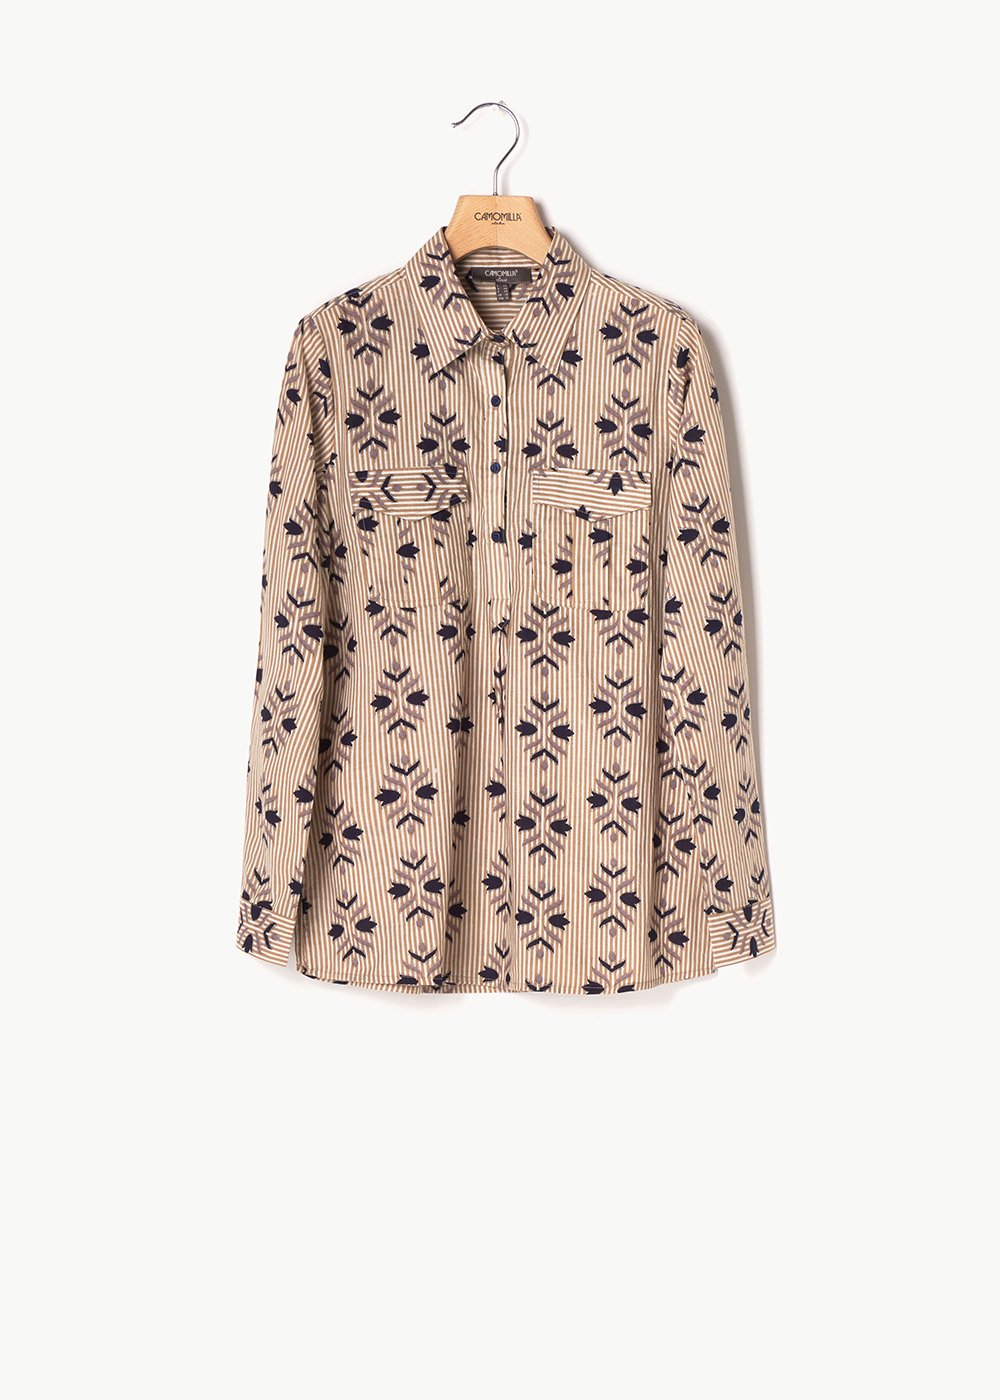 Clea shirt with stripes and flowers pattern - Light Denim / White / Fantasia	 - Woman